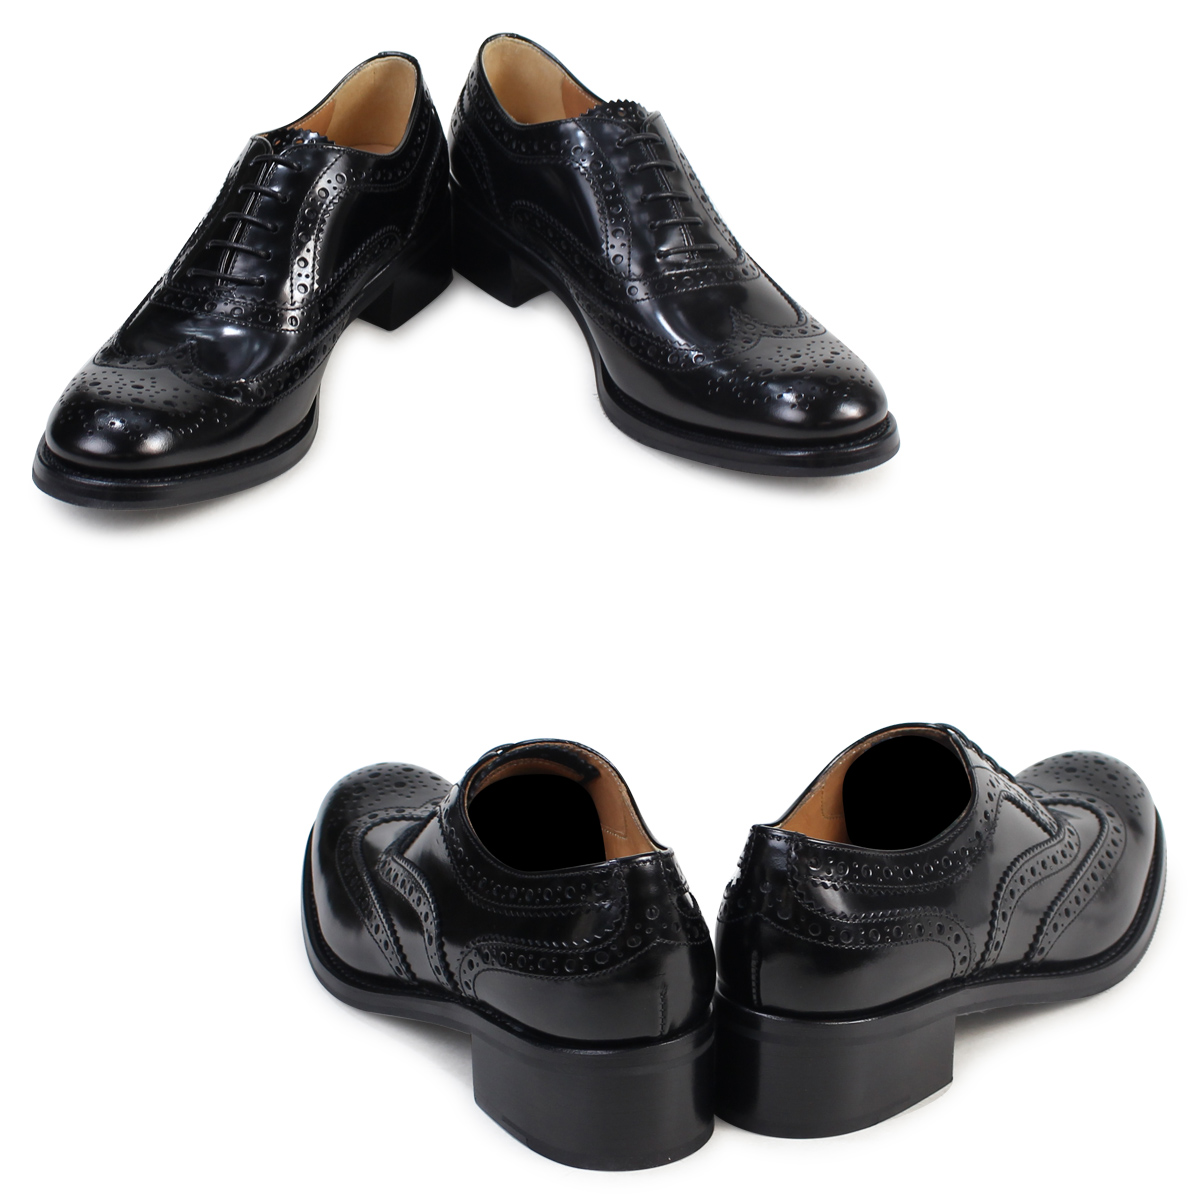 ALLSPORTS: Churchs Shoes Lady's Church Catherine Shoes